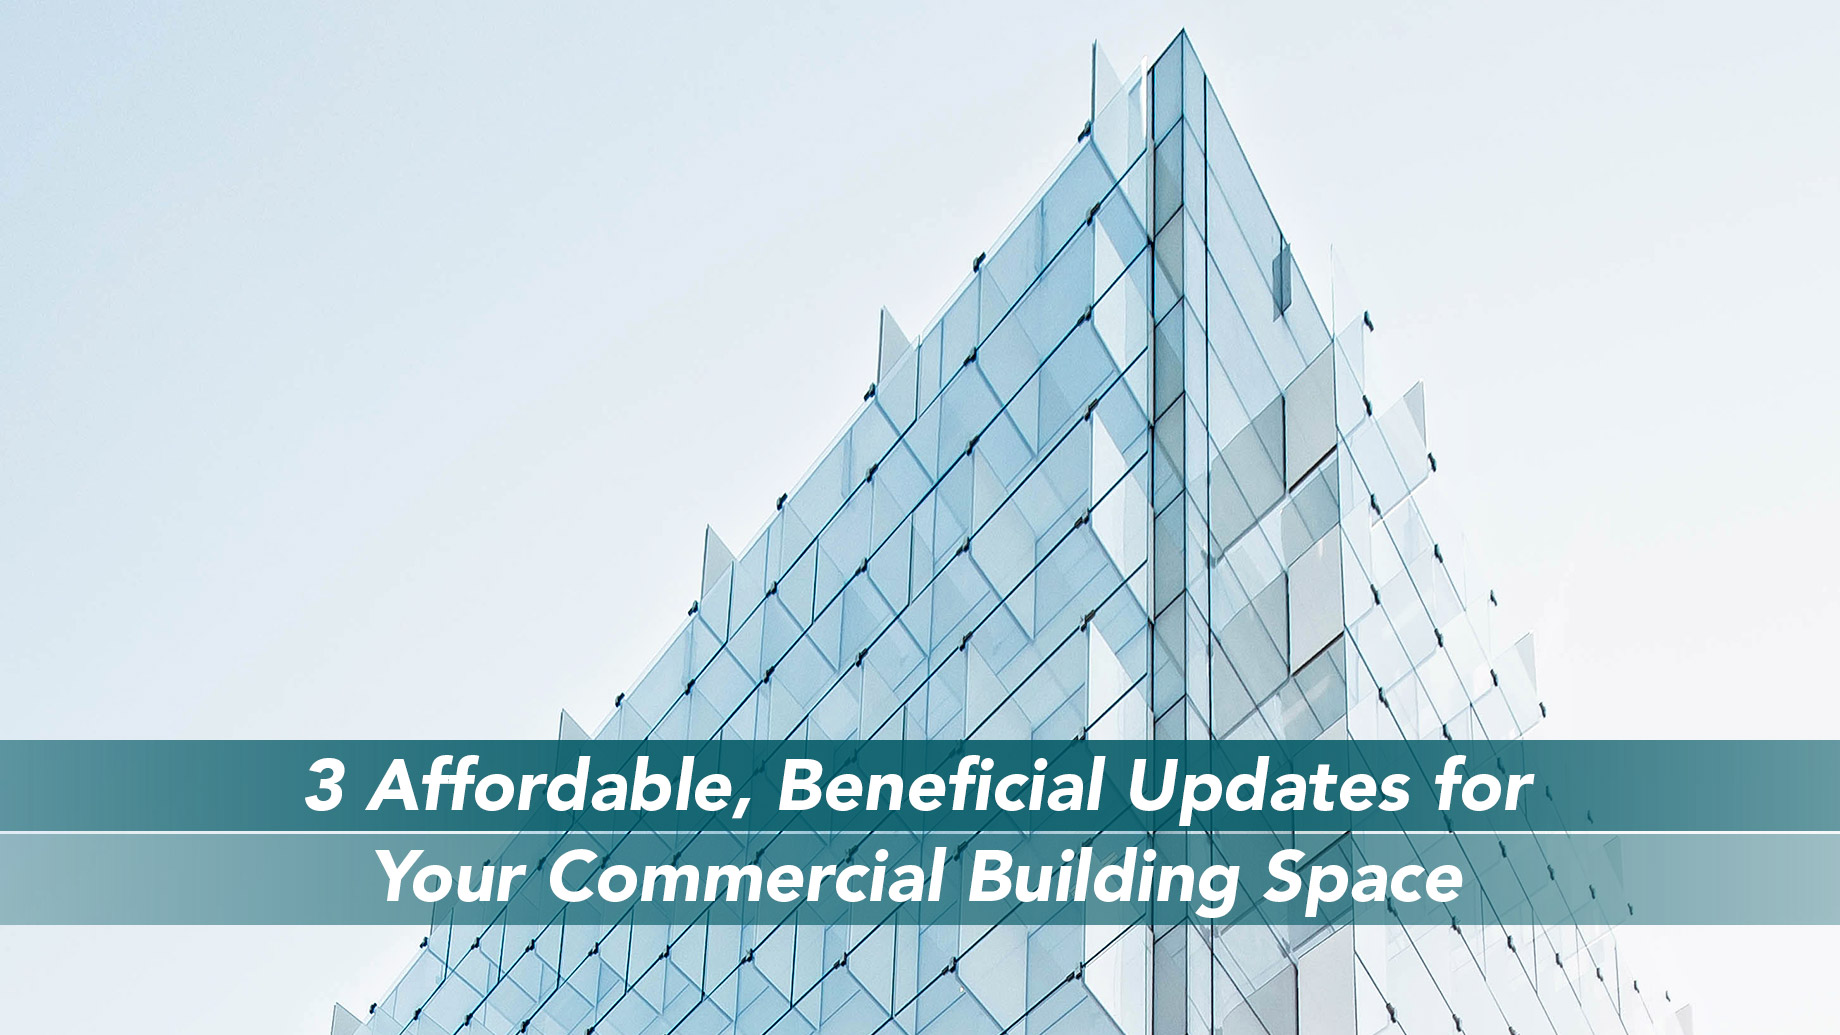 3 Affordable, Beneficial Updates for Your Commercial Building Space